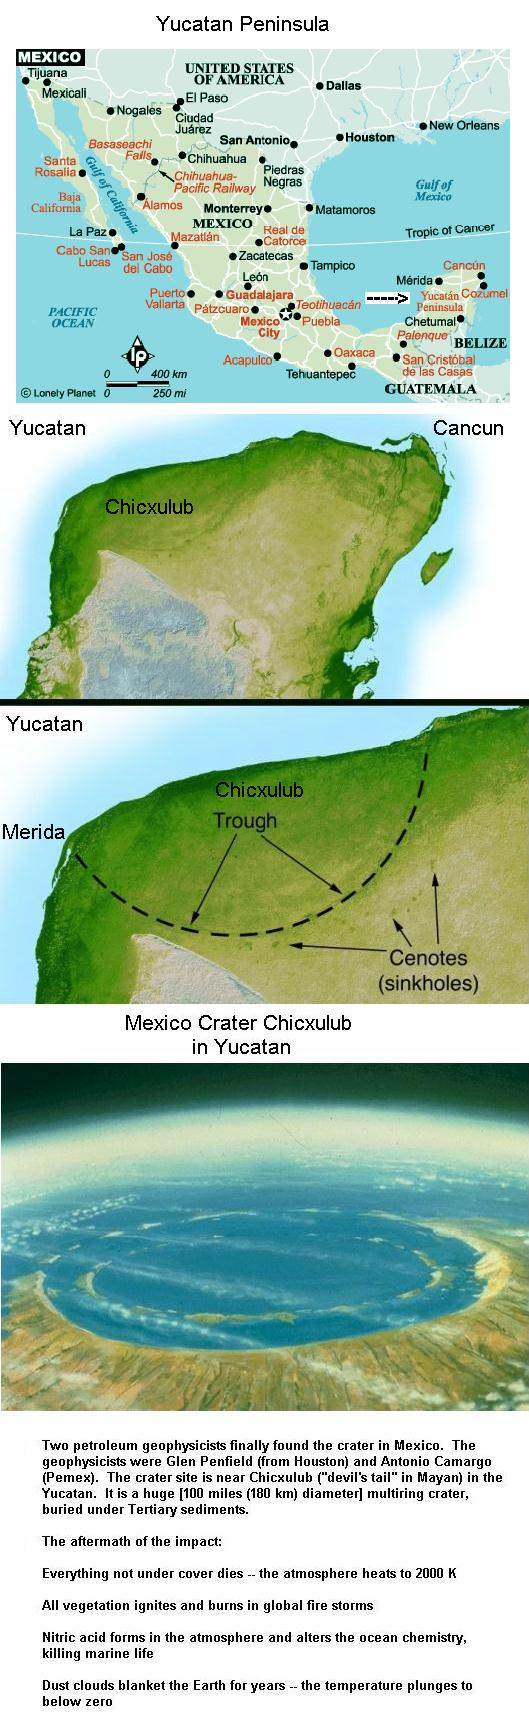 fig-1e-mexico-crater-chicxulub